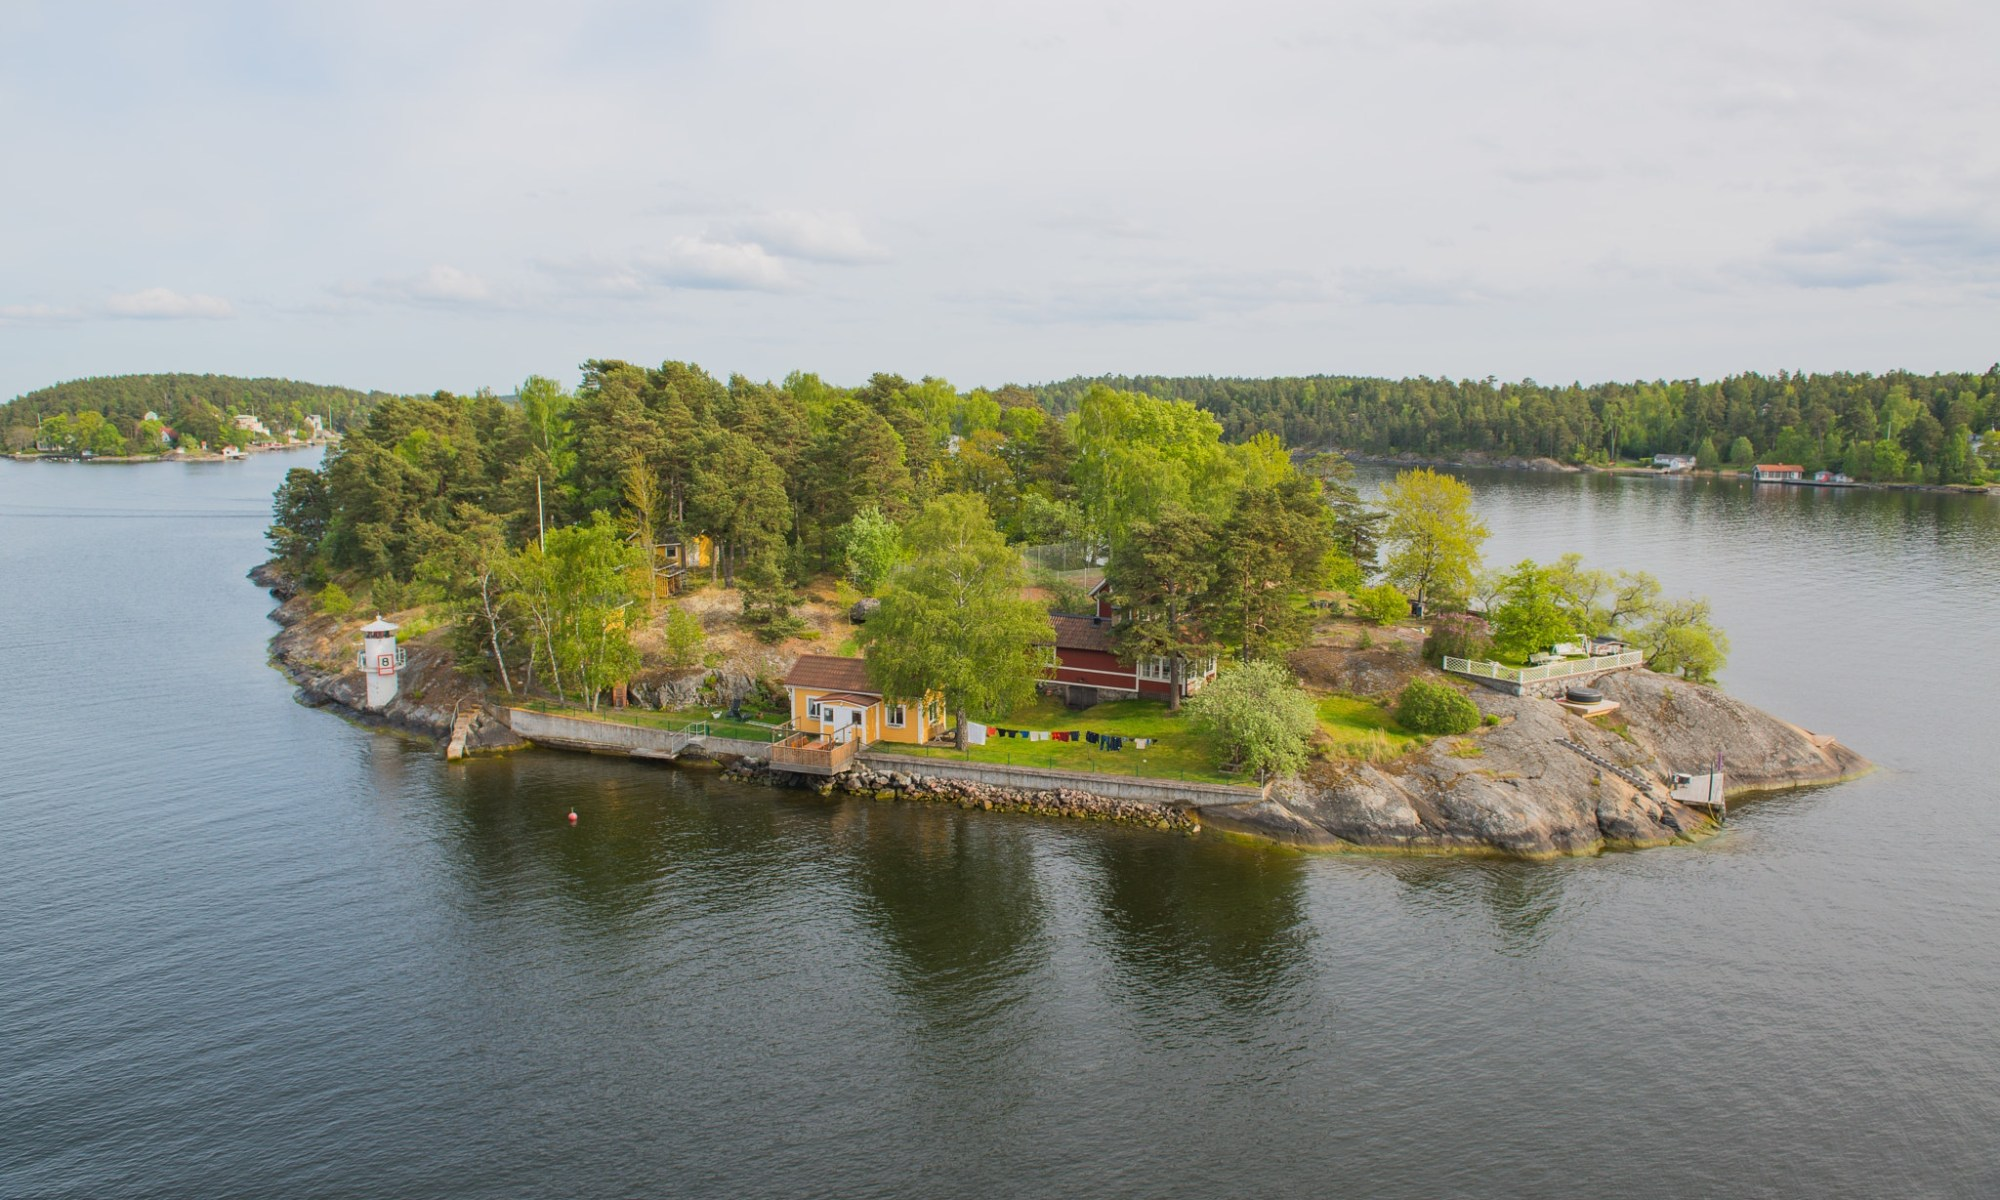 An island in Sweden